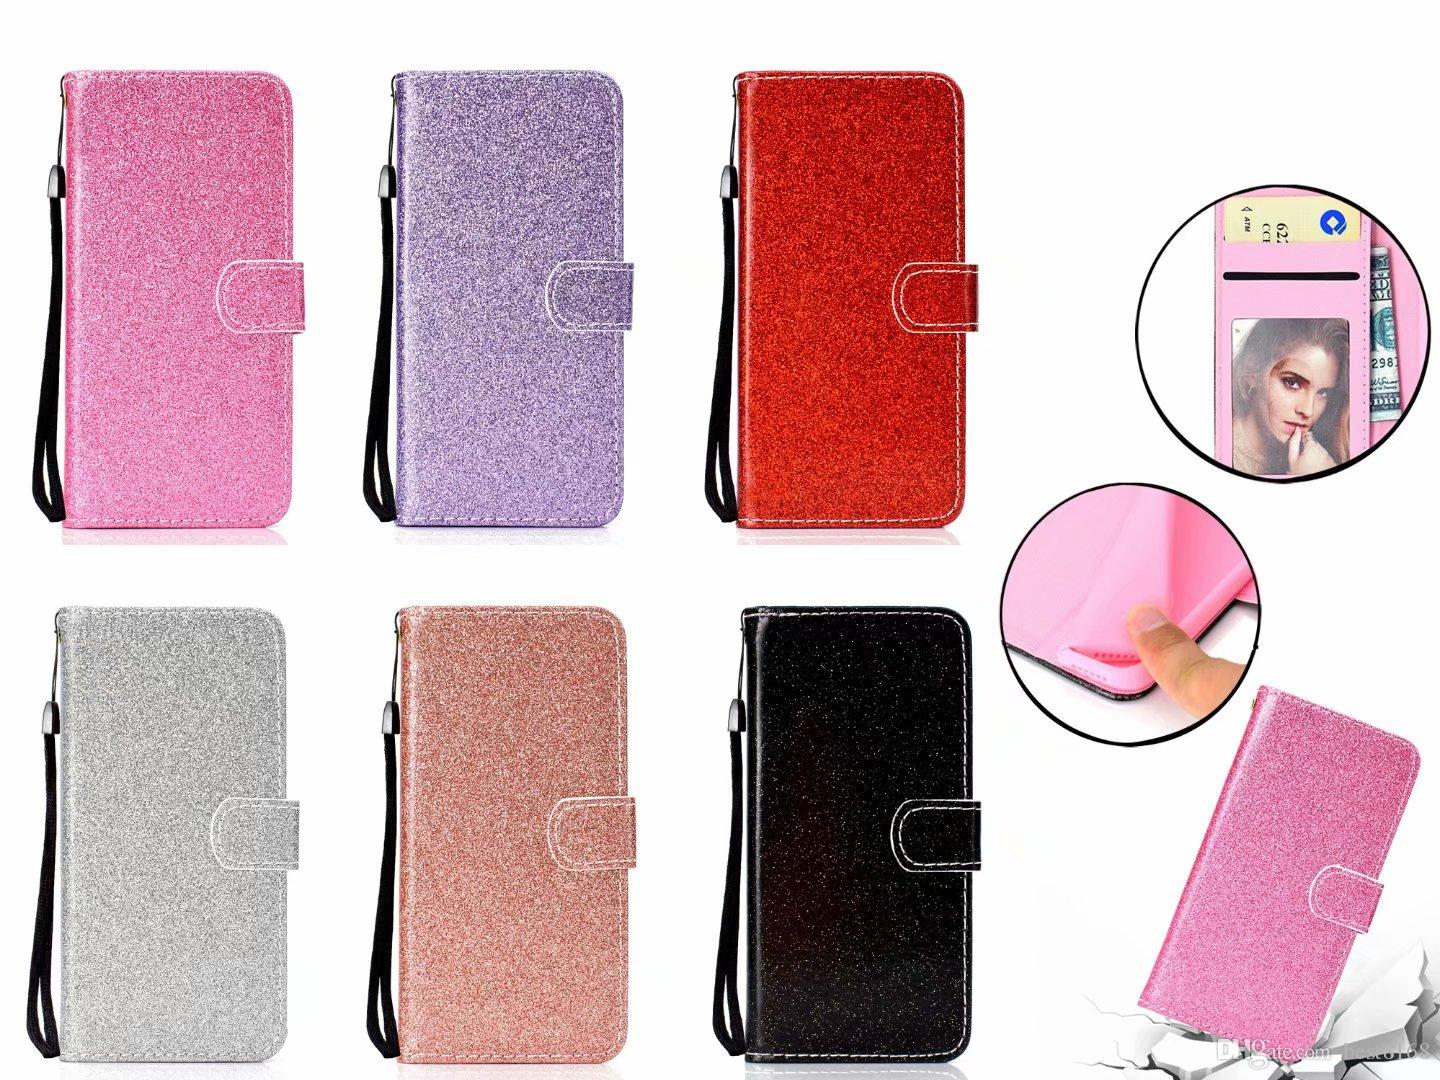 Luxury Bling Glitter Wallet Leather Case For Iphone XR XS MAX XS X 8 7 Plus  6 6S For Redmi 5 Note 5A Sparkly Flip Cover Sparkle Shiny Strap 0972943e4